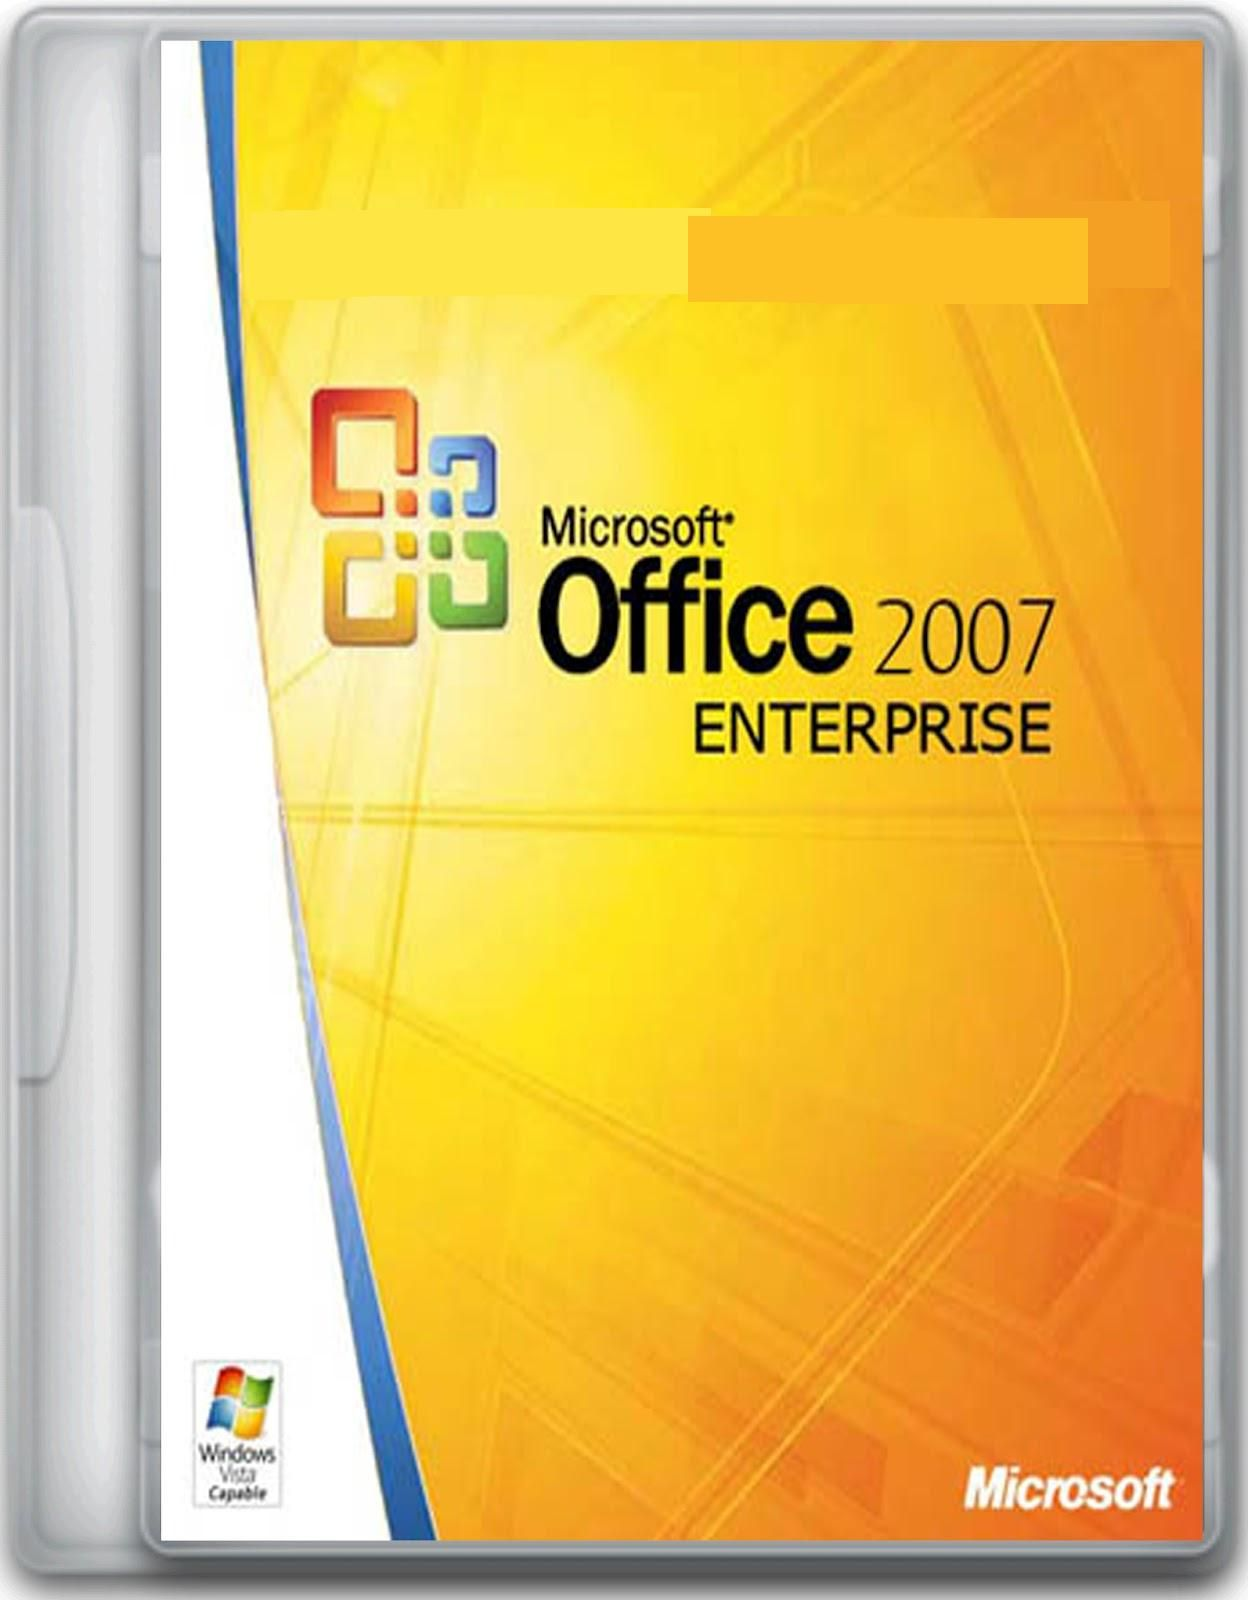 office 2007 free download with crack full version for windows 10